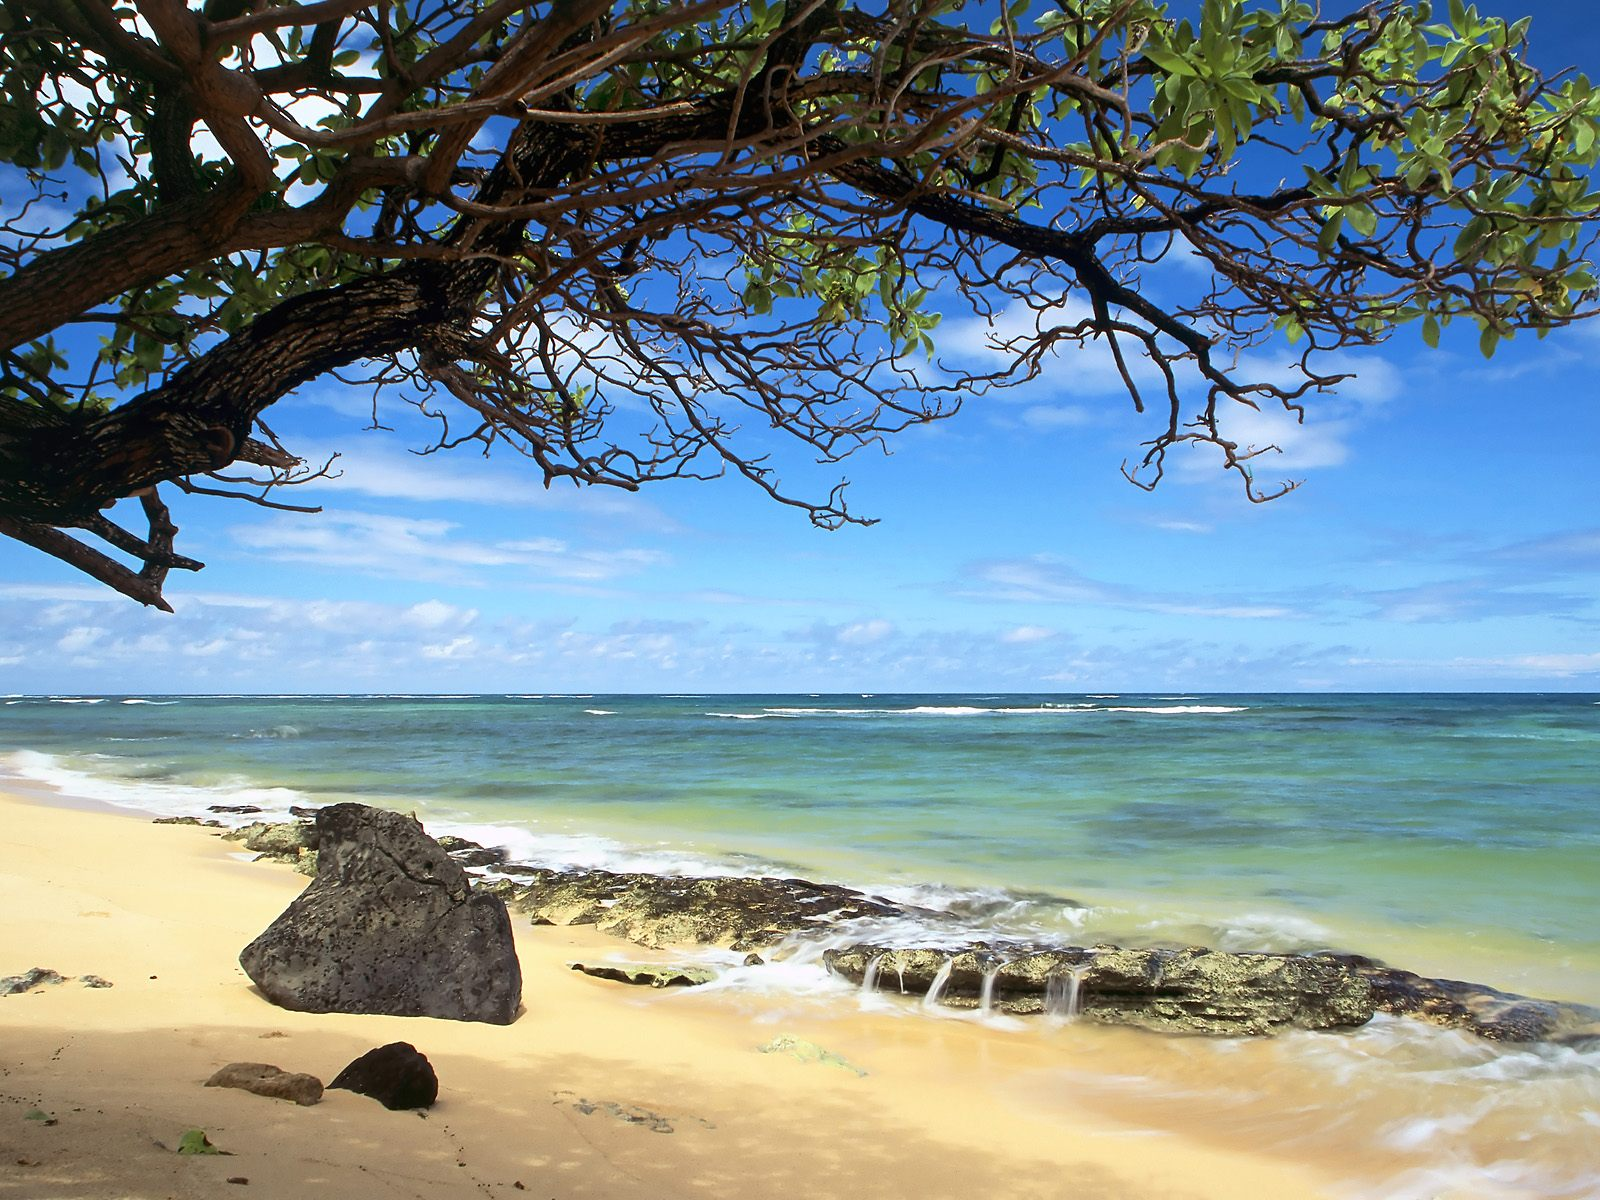 uk kanenelu beach oahu hawaii nature wallpaper image featuring beaches 1600x1200